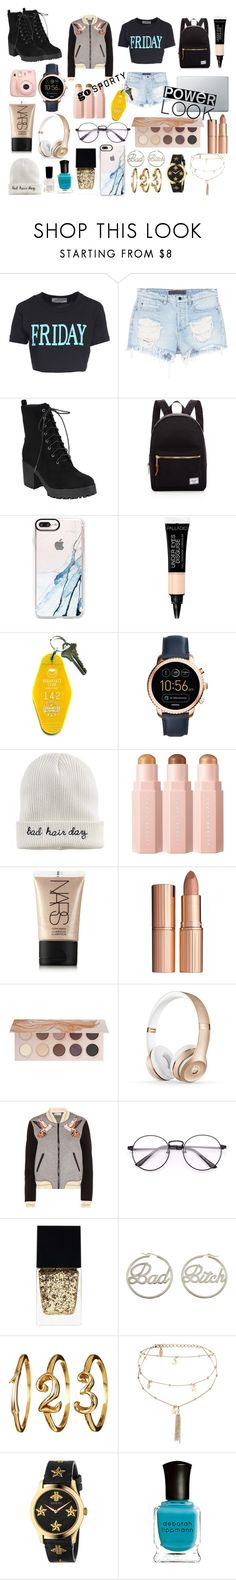 """""""college"""" by lynsay-1 on Polyvore featuring Alberta Ferretti, Alexander Wang, Herschel Supply Co., Casetify, Three Potato Four, FOSSIL, Mudd, NARS Cosmetics, Charlotte Tilbury and ZOEVA"""